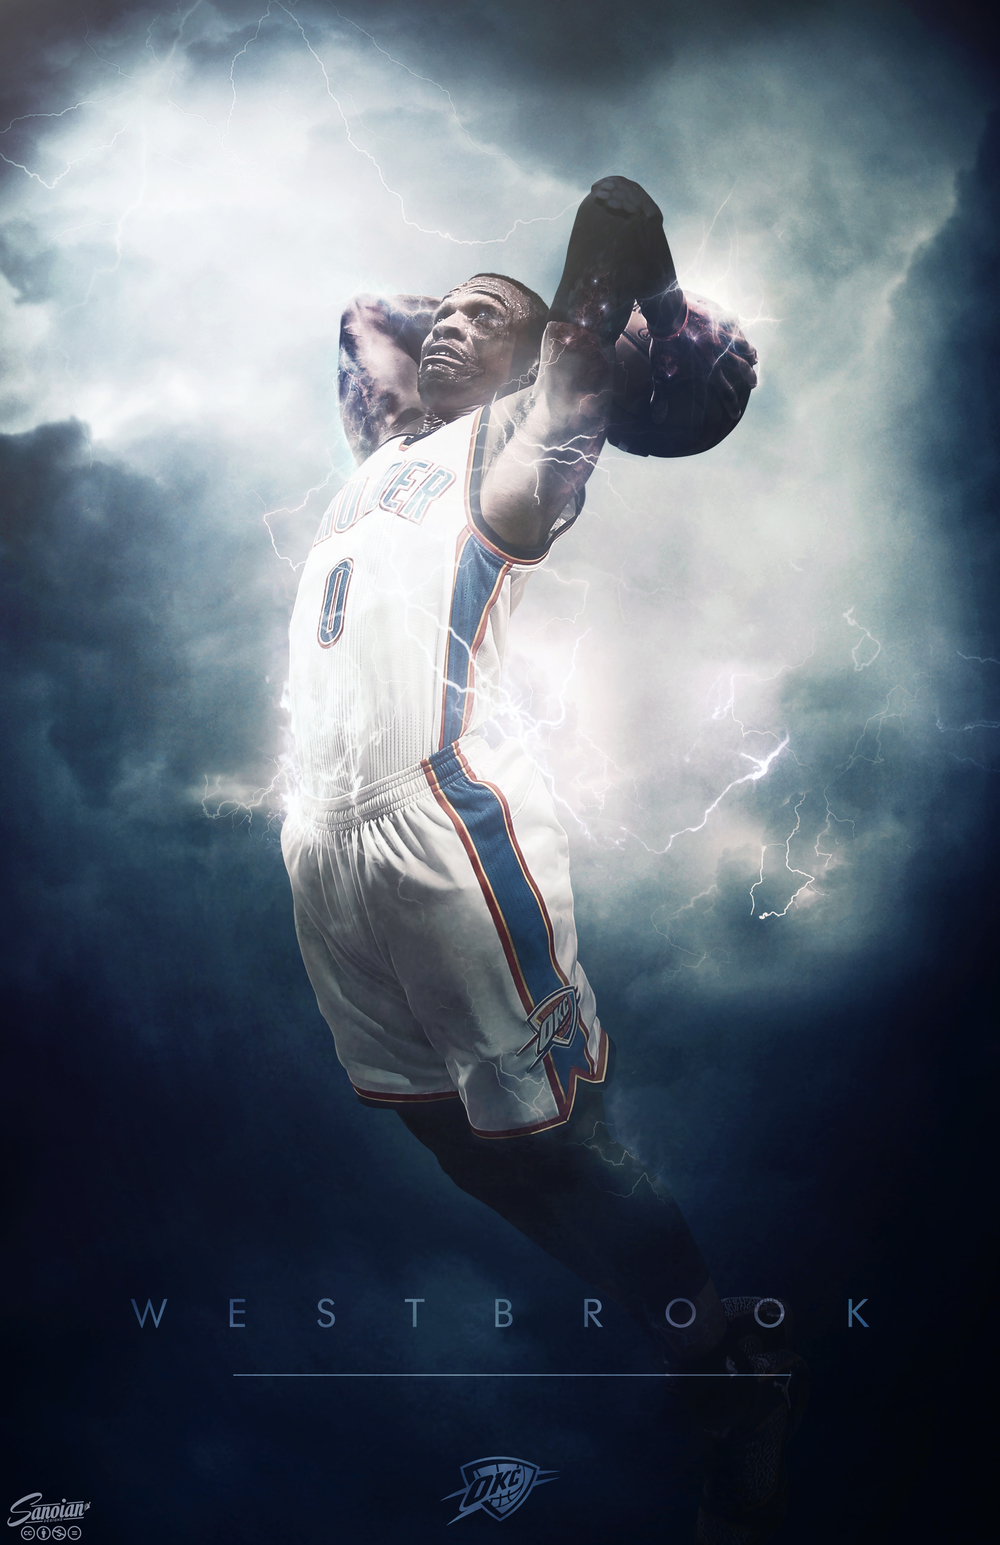 """Energize"" - Russell Westbrook"